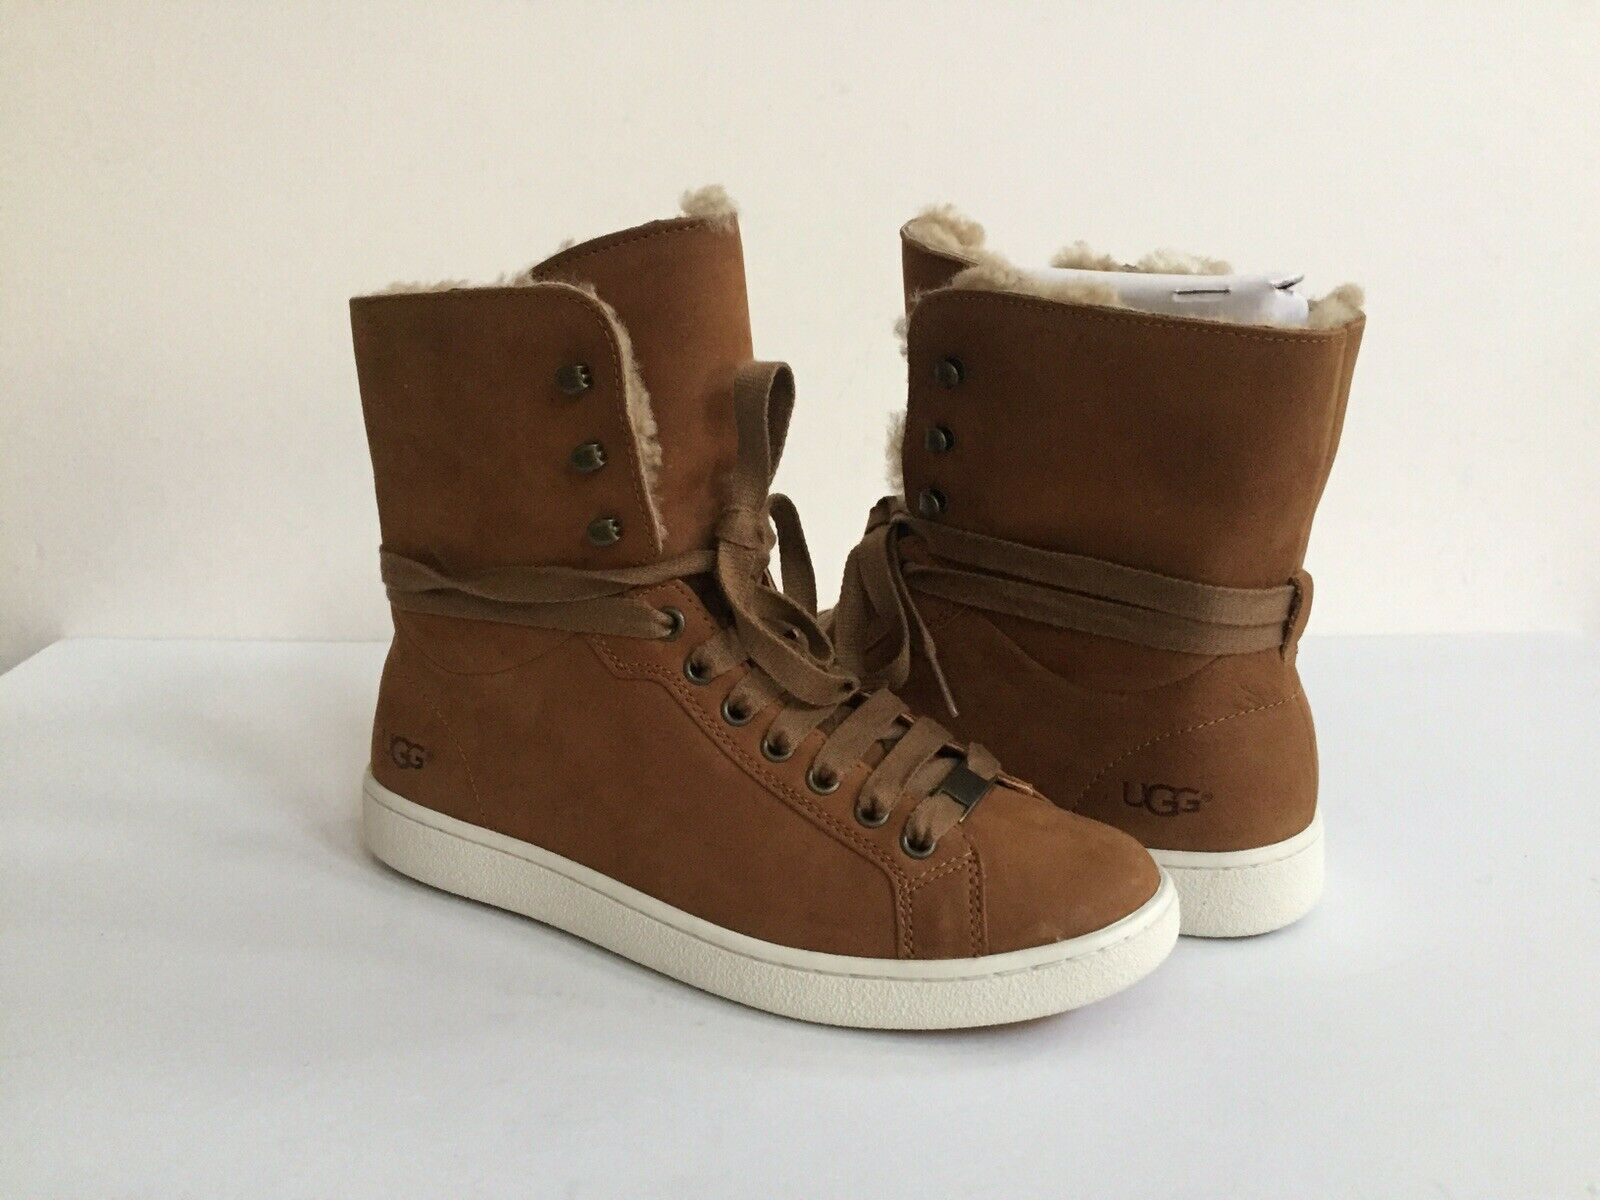 UGG STARLYN CHESTNUT ANKLE SNEAKERS LEATHER SHOE US 9.5 / EU 40.5 / UK 7.5 NIB